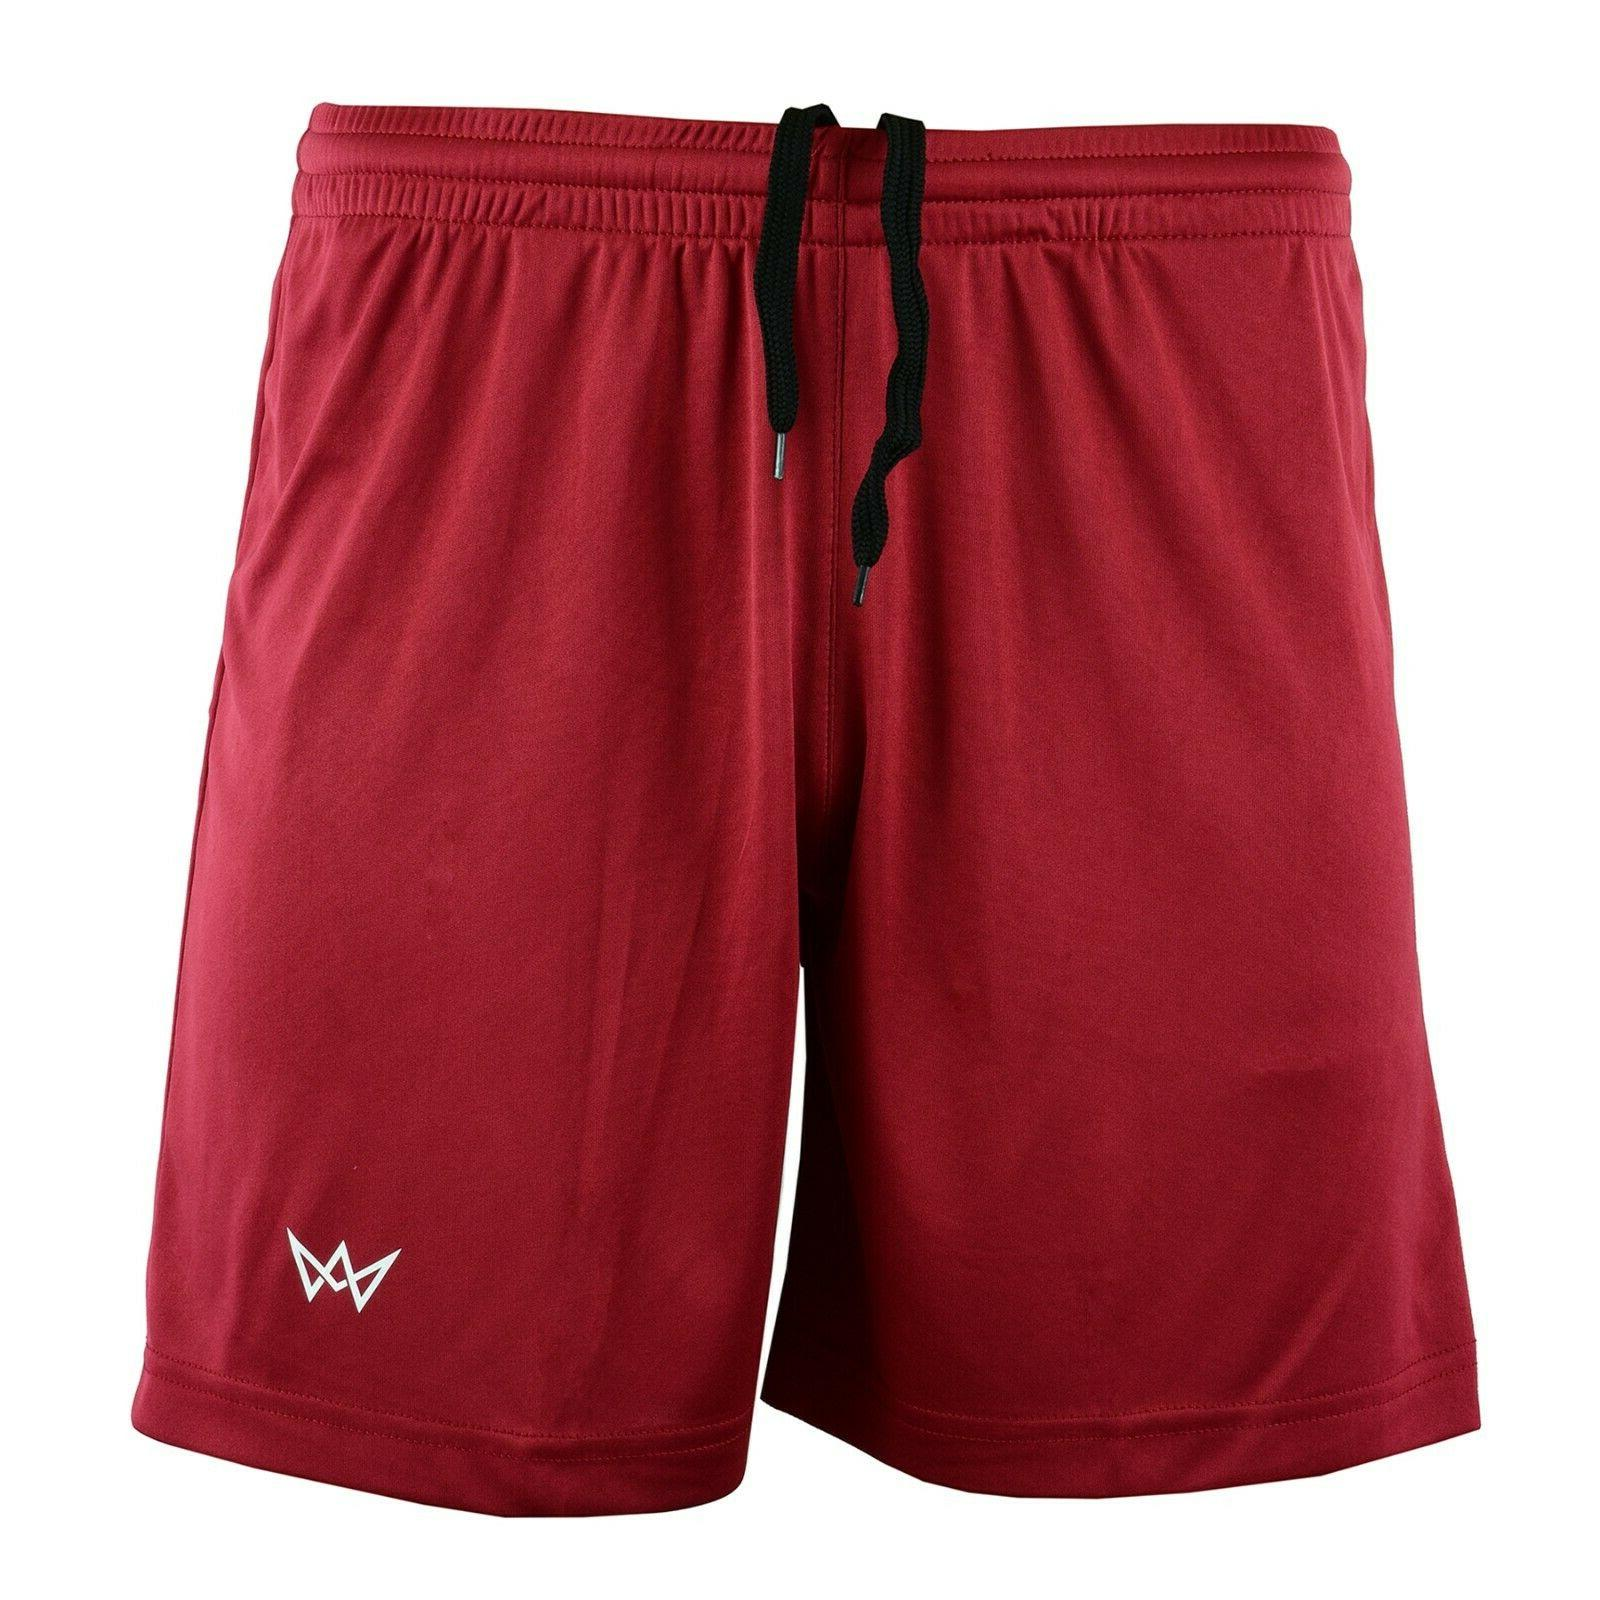 Mens Fit Gym Sports Running Short